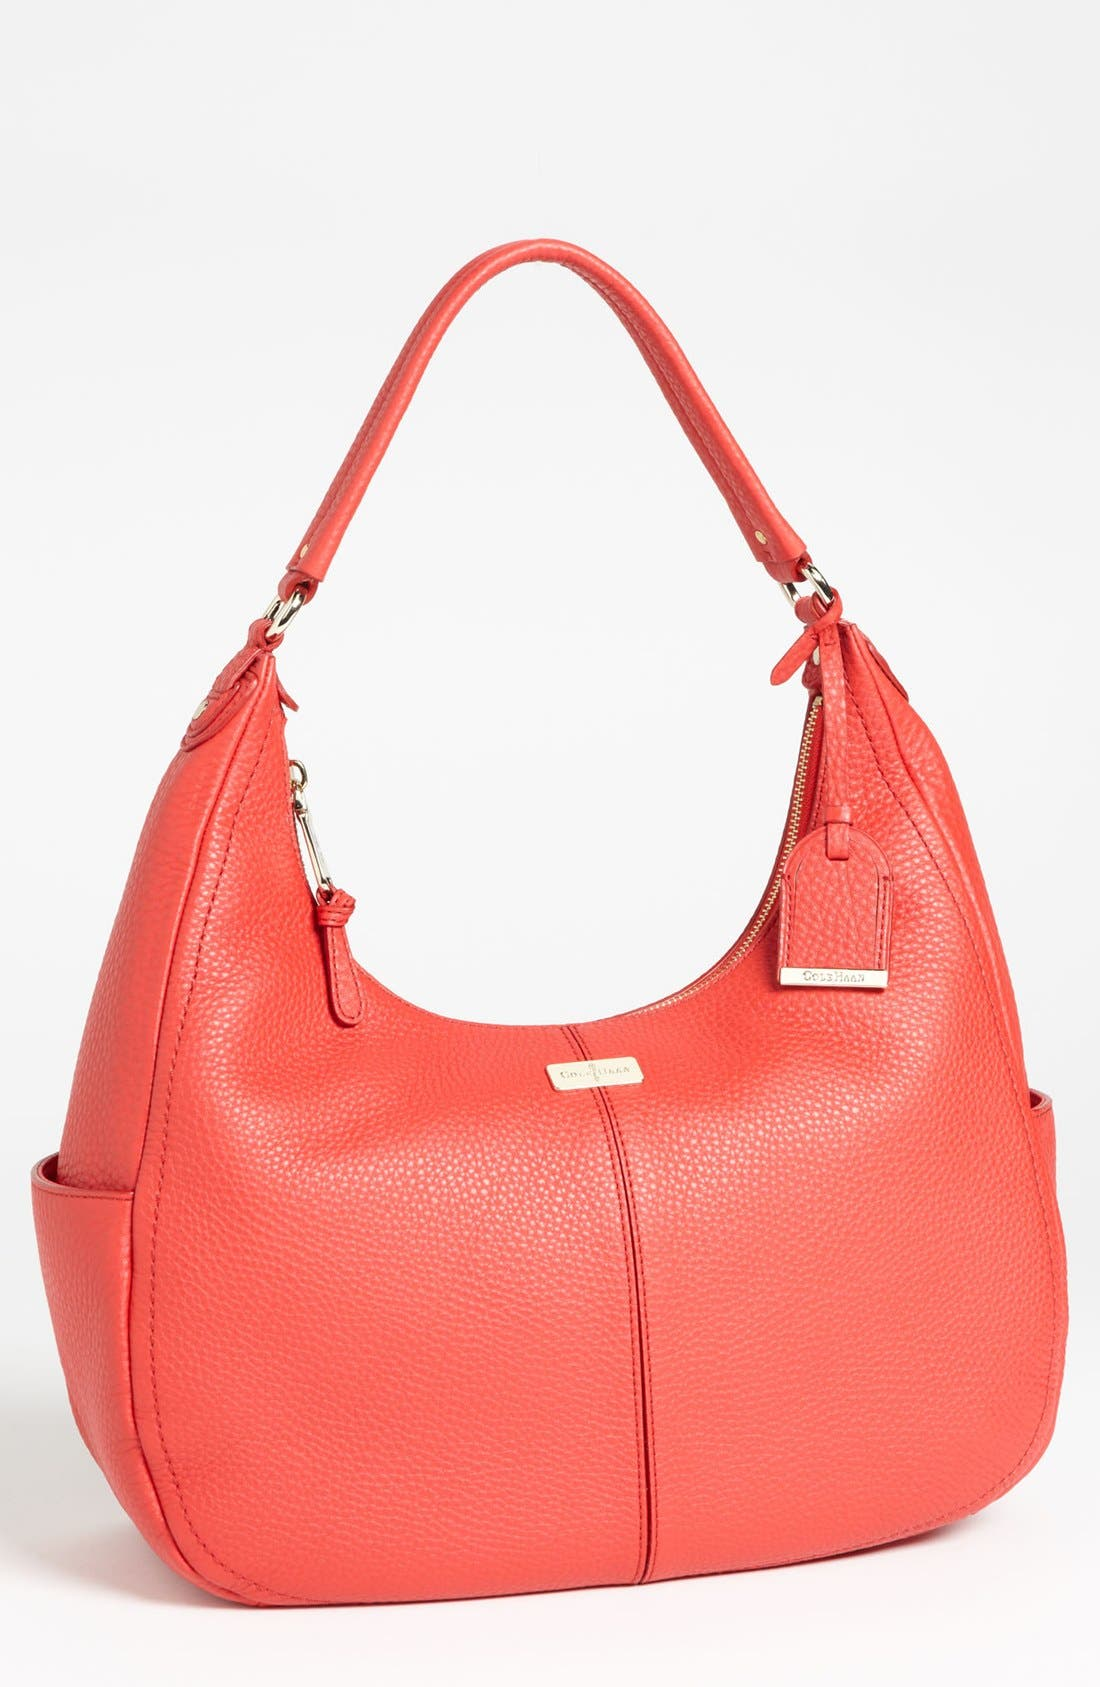 Main Image - Cole Haan 'Village' Hobo